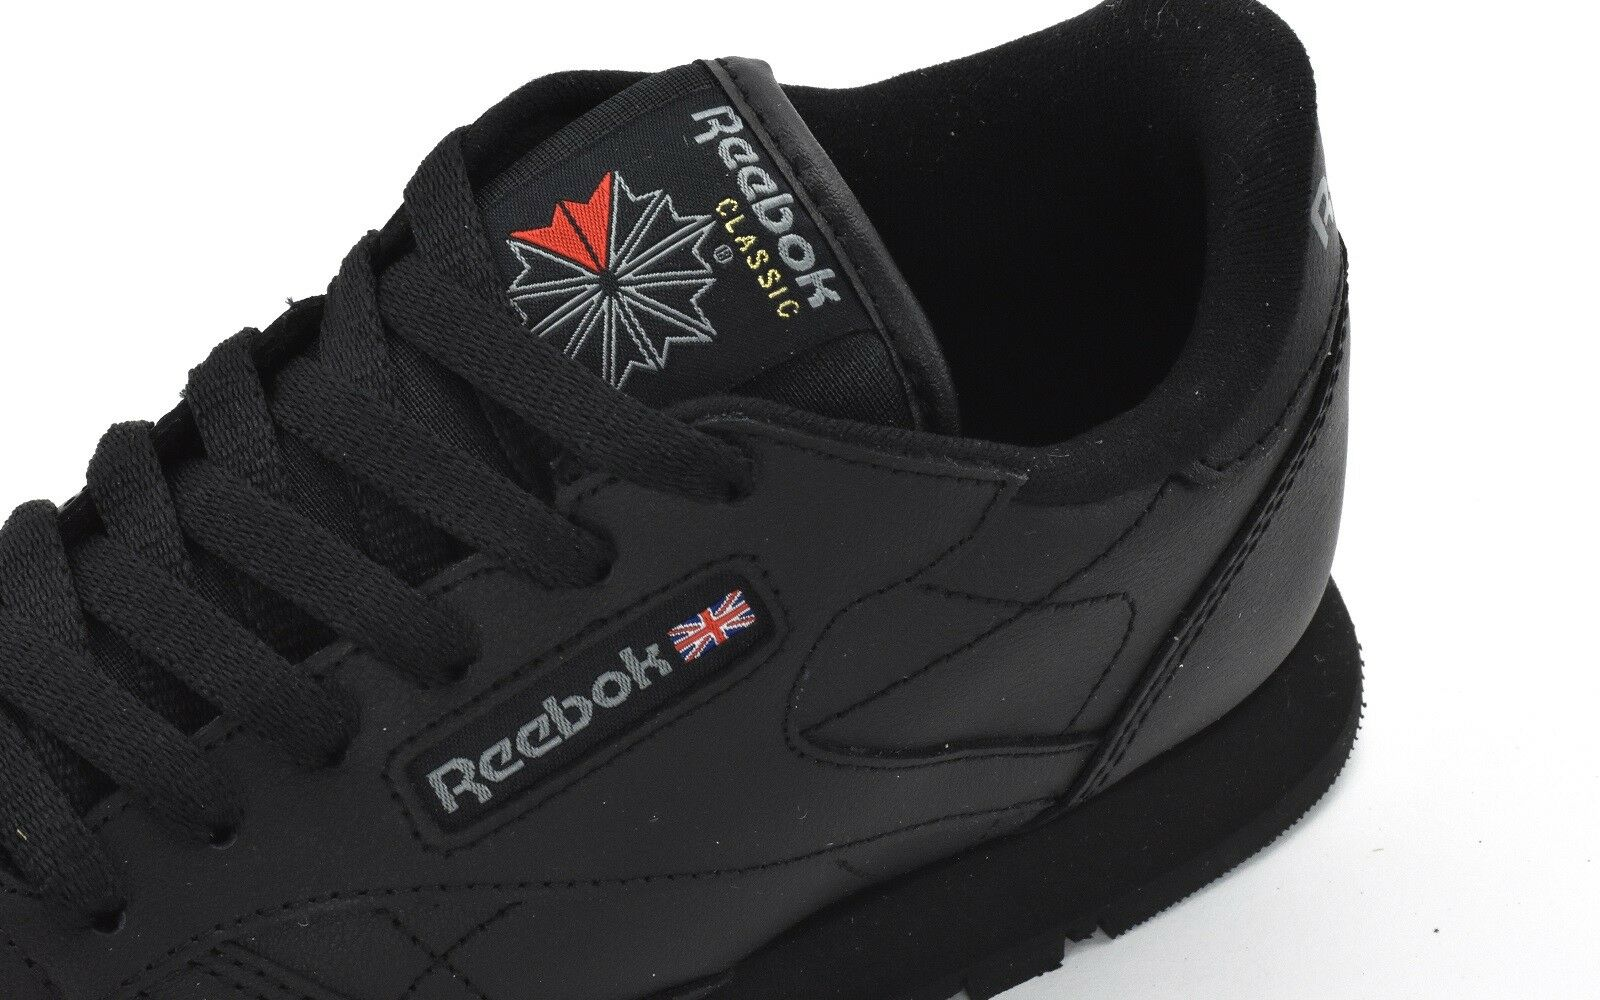 015ac06657fd21 Reebok Classic Leather Shoes Children Trainers Black 50149 EUR 36 5 for  sale online